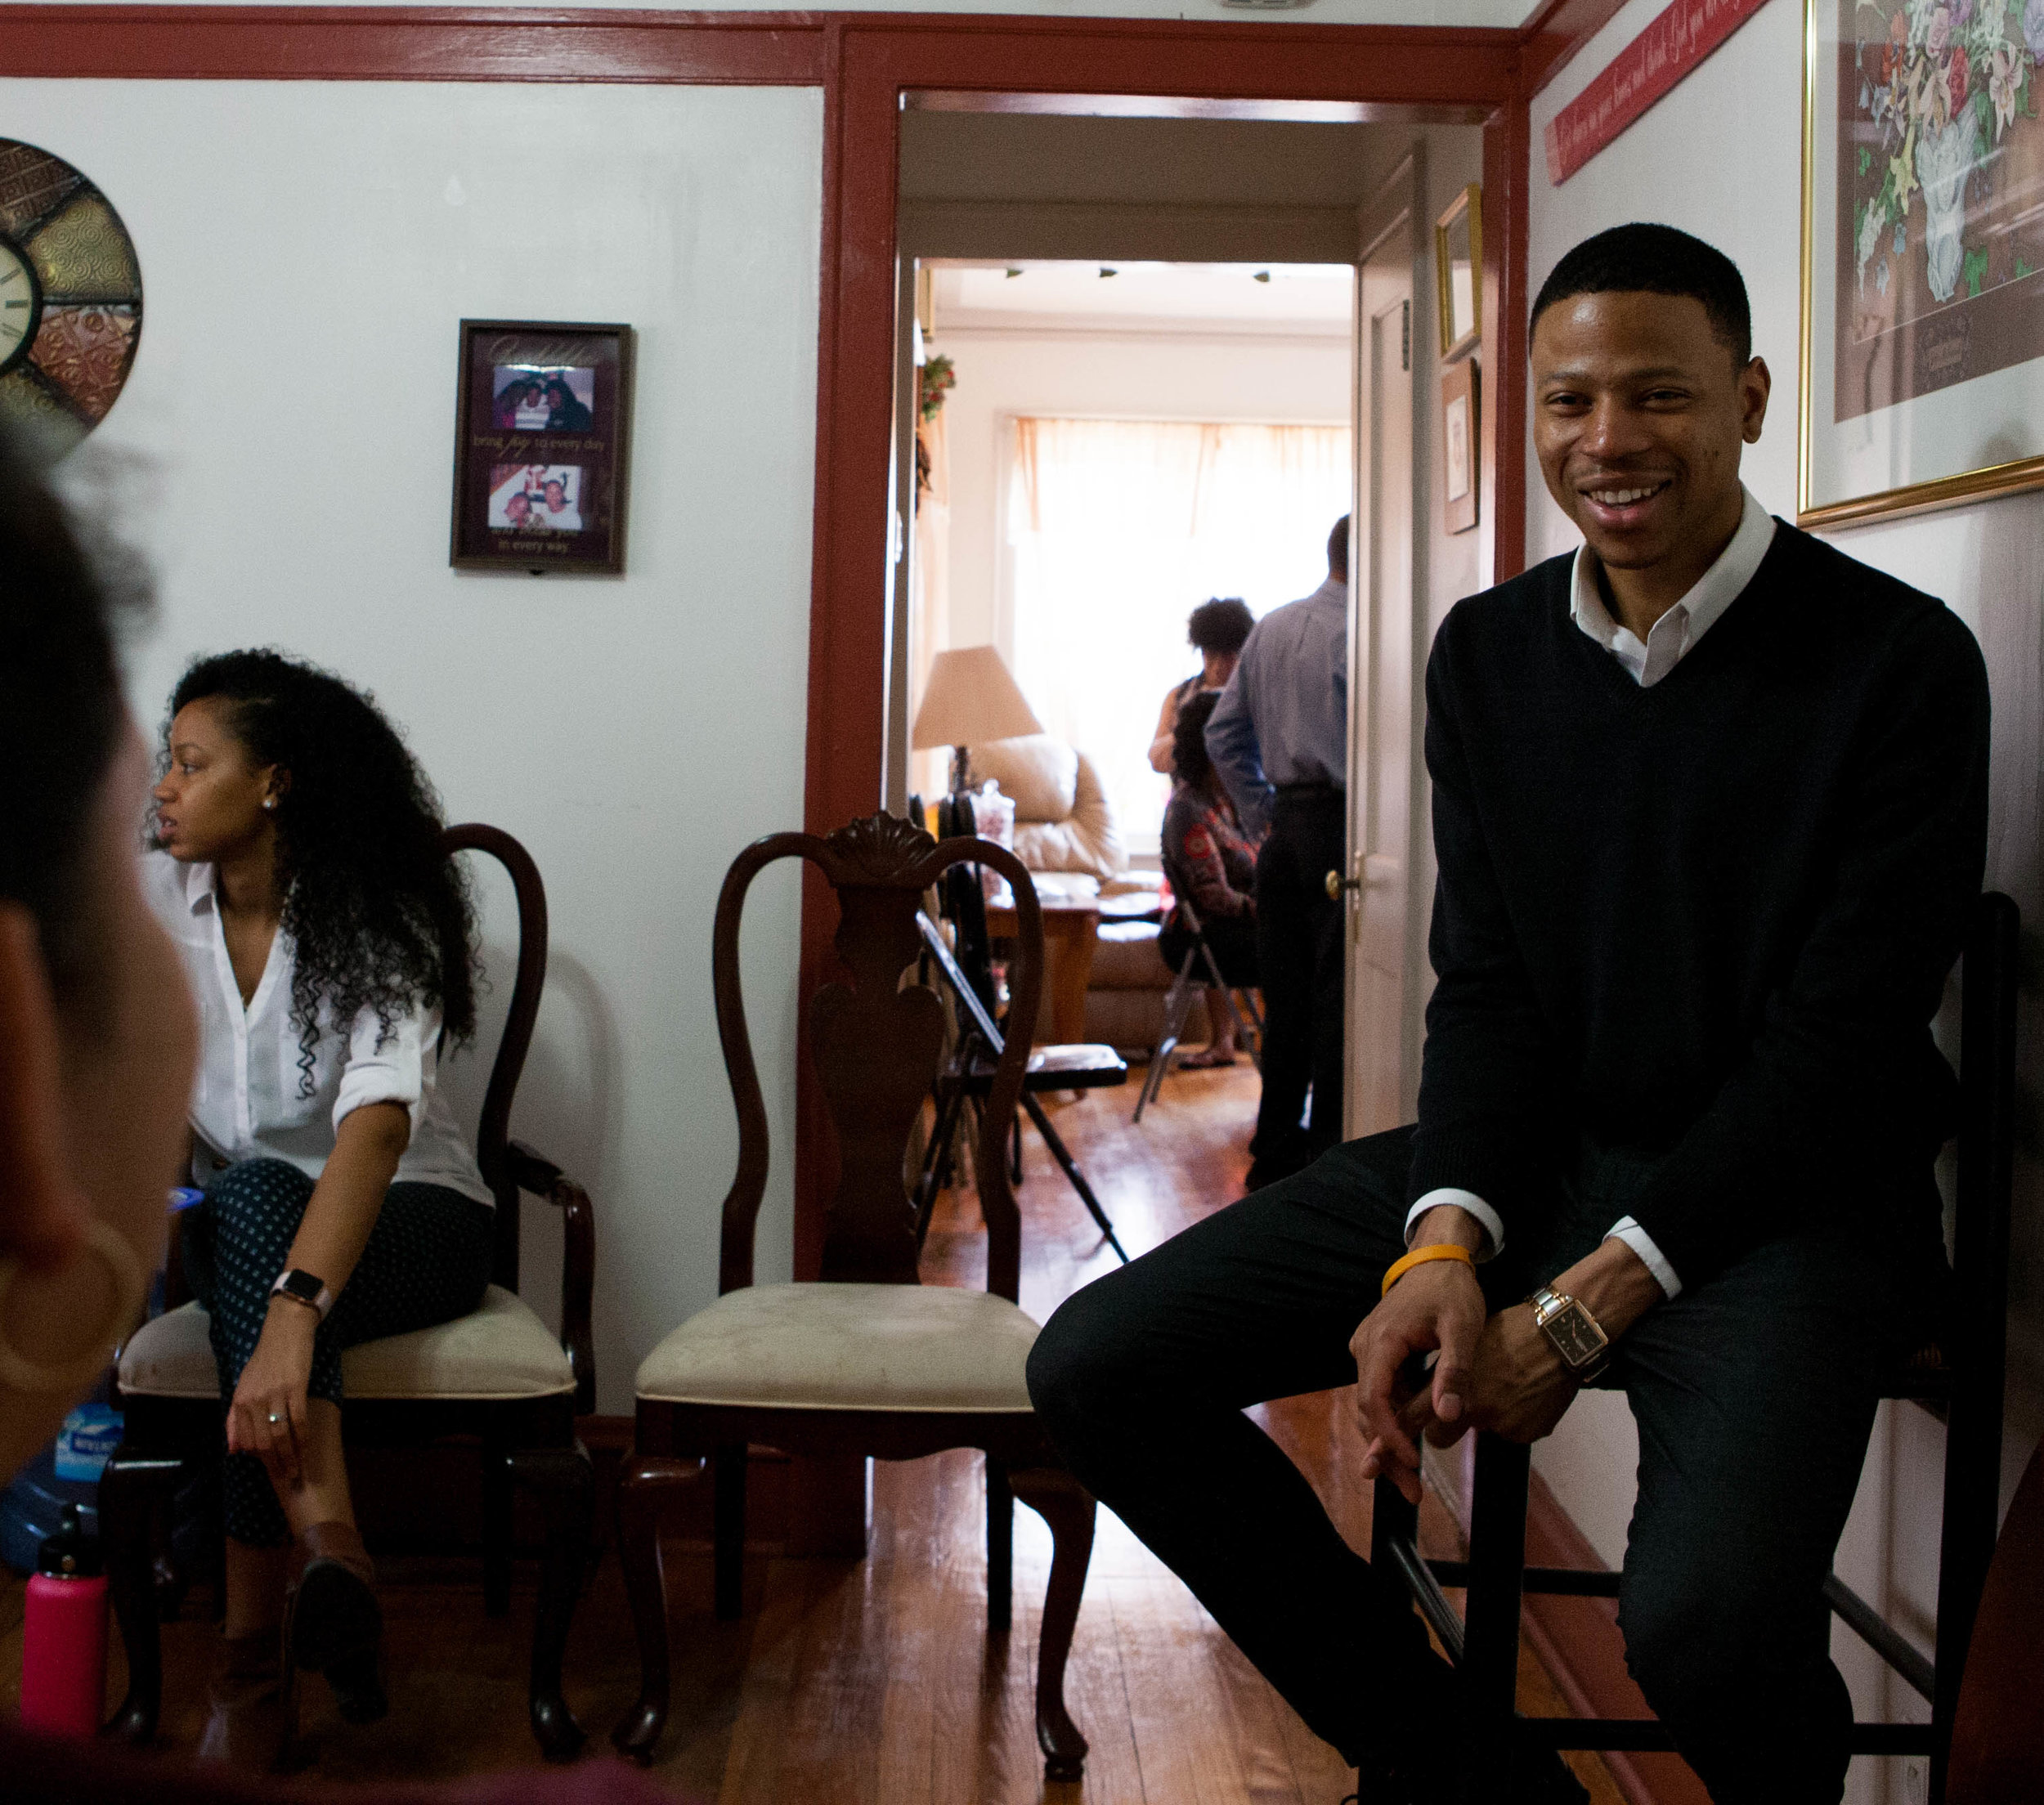 Robert sits and smiles to the camera at a fundraiser at his mother's home.